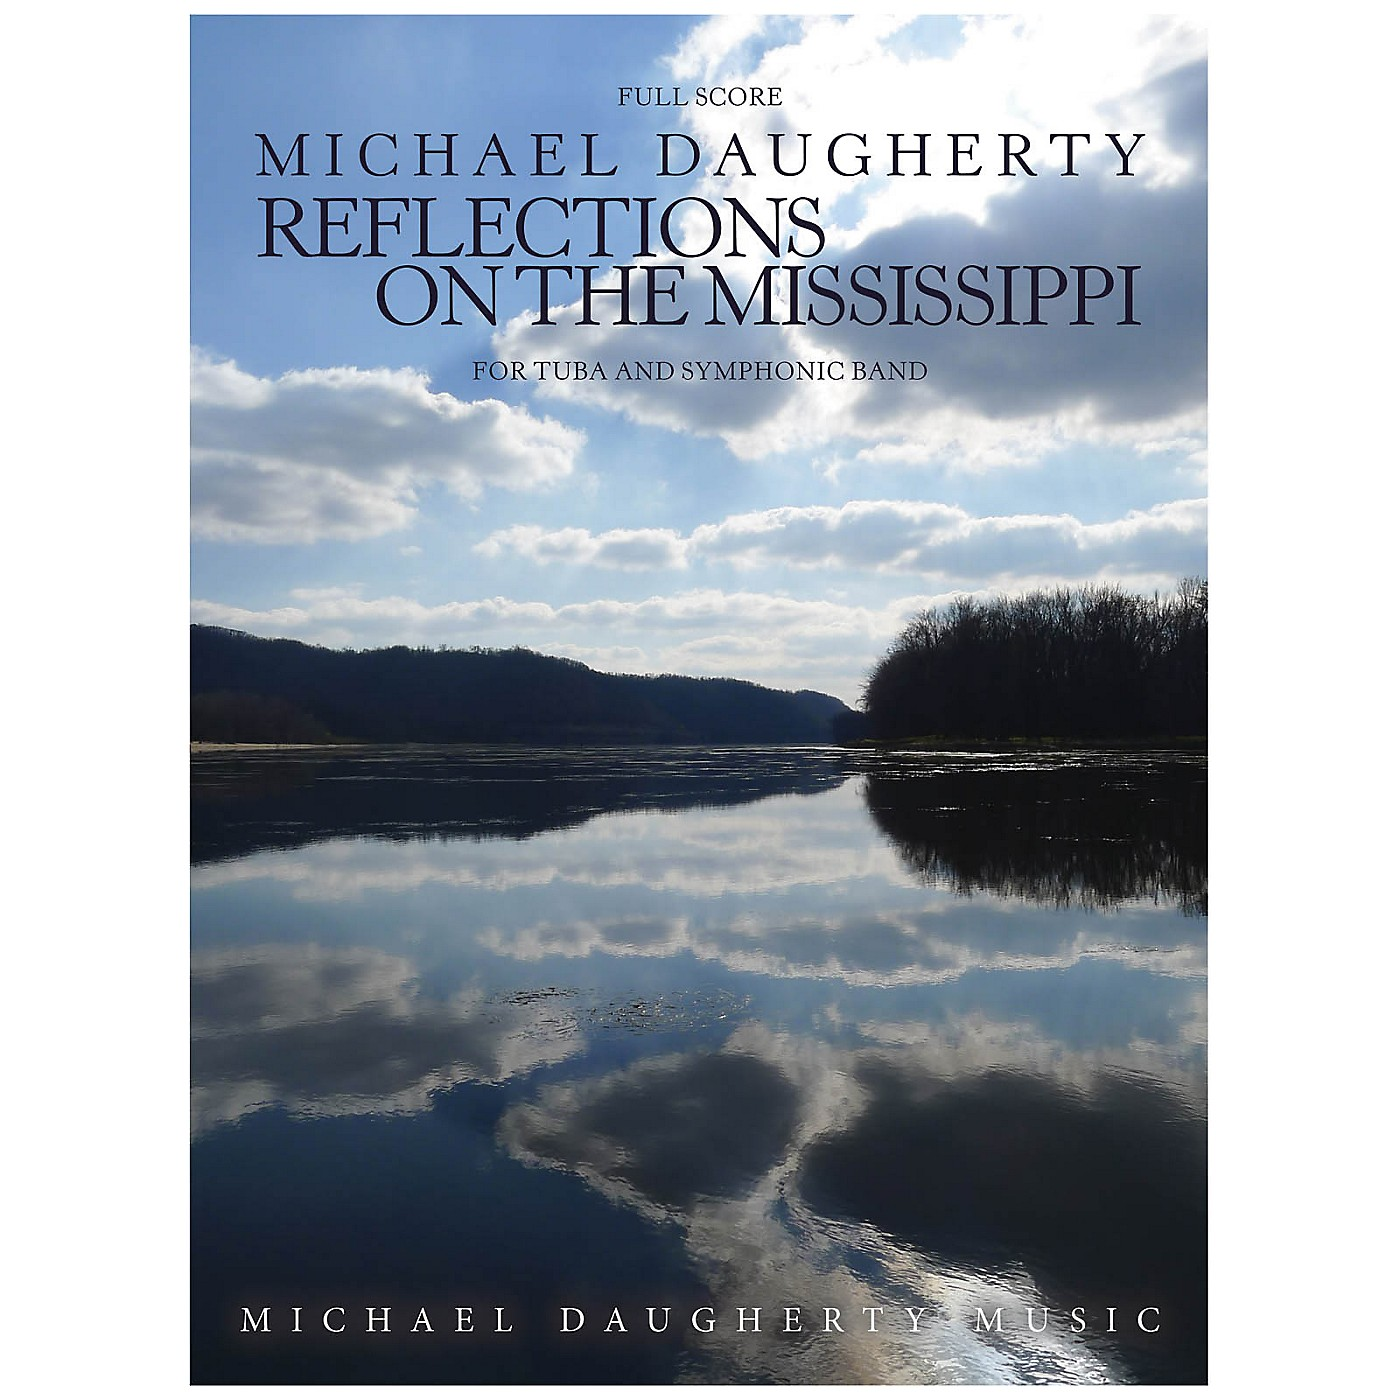 Michael Daugherty Music Reflections on the Mississippi (for Tuba and Symphonic Band) Concert Band Level 5-6 thumbnail